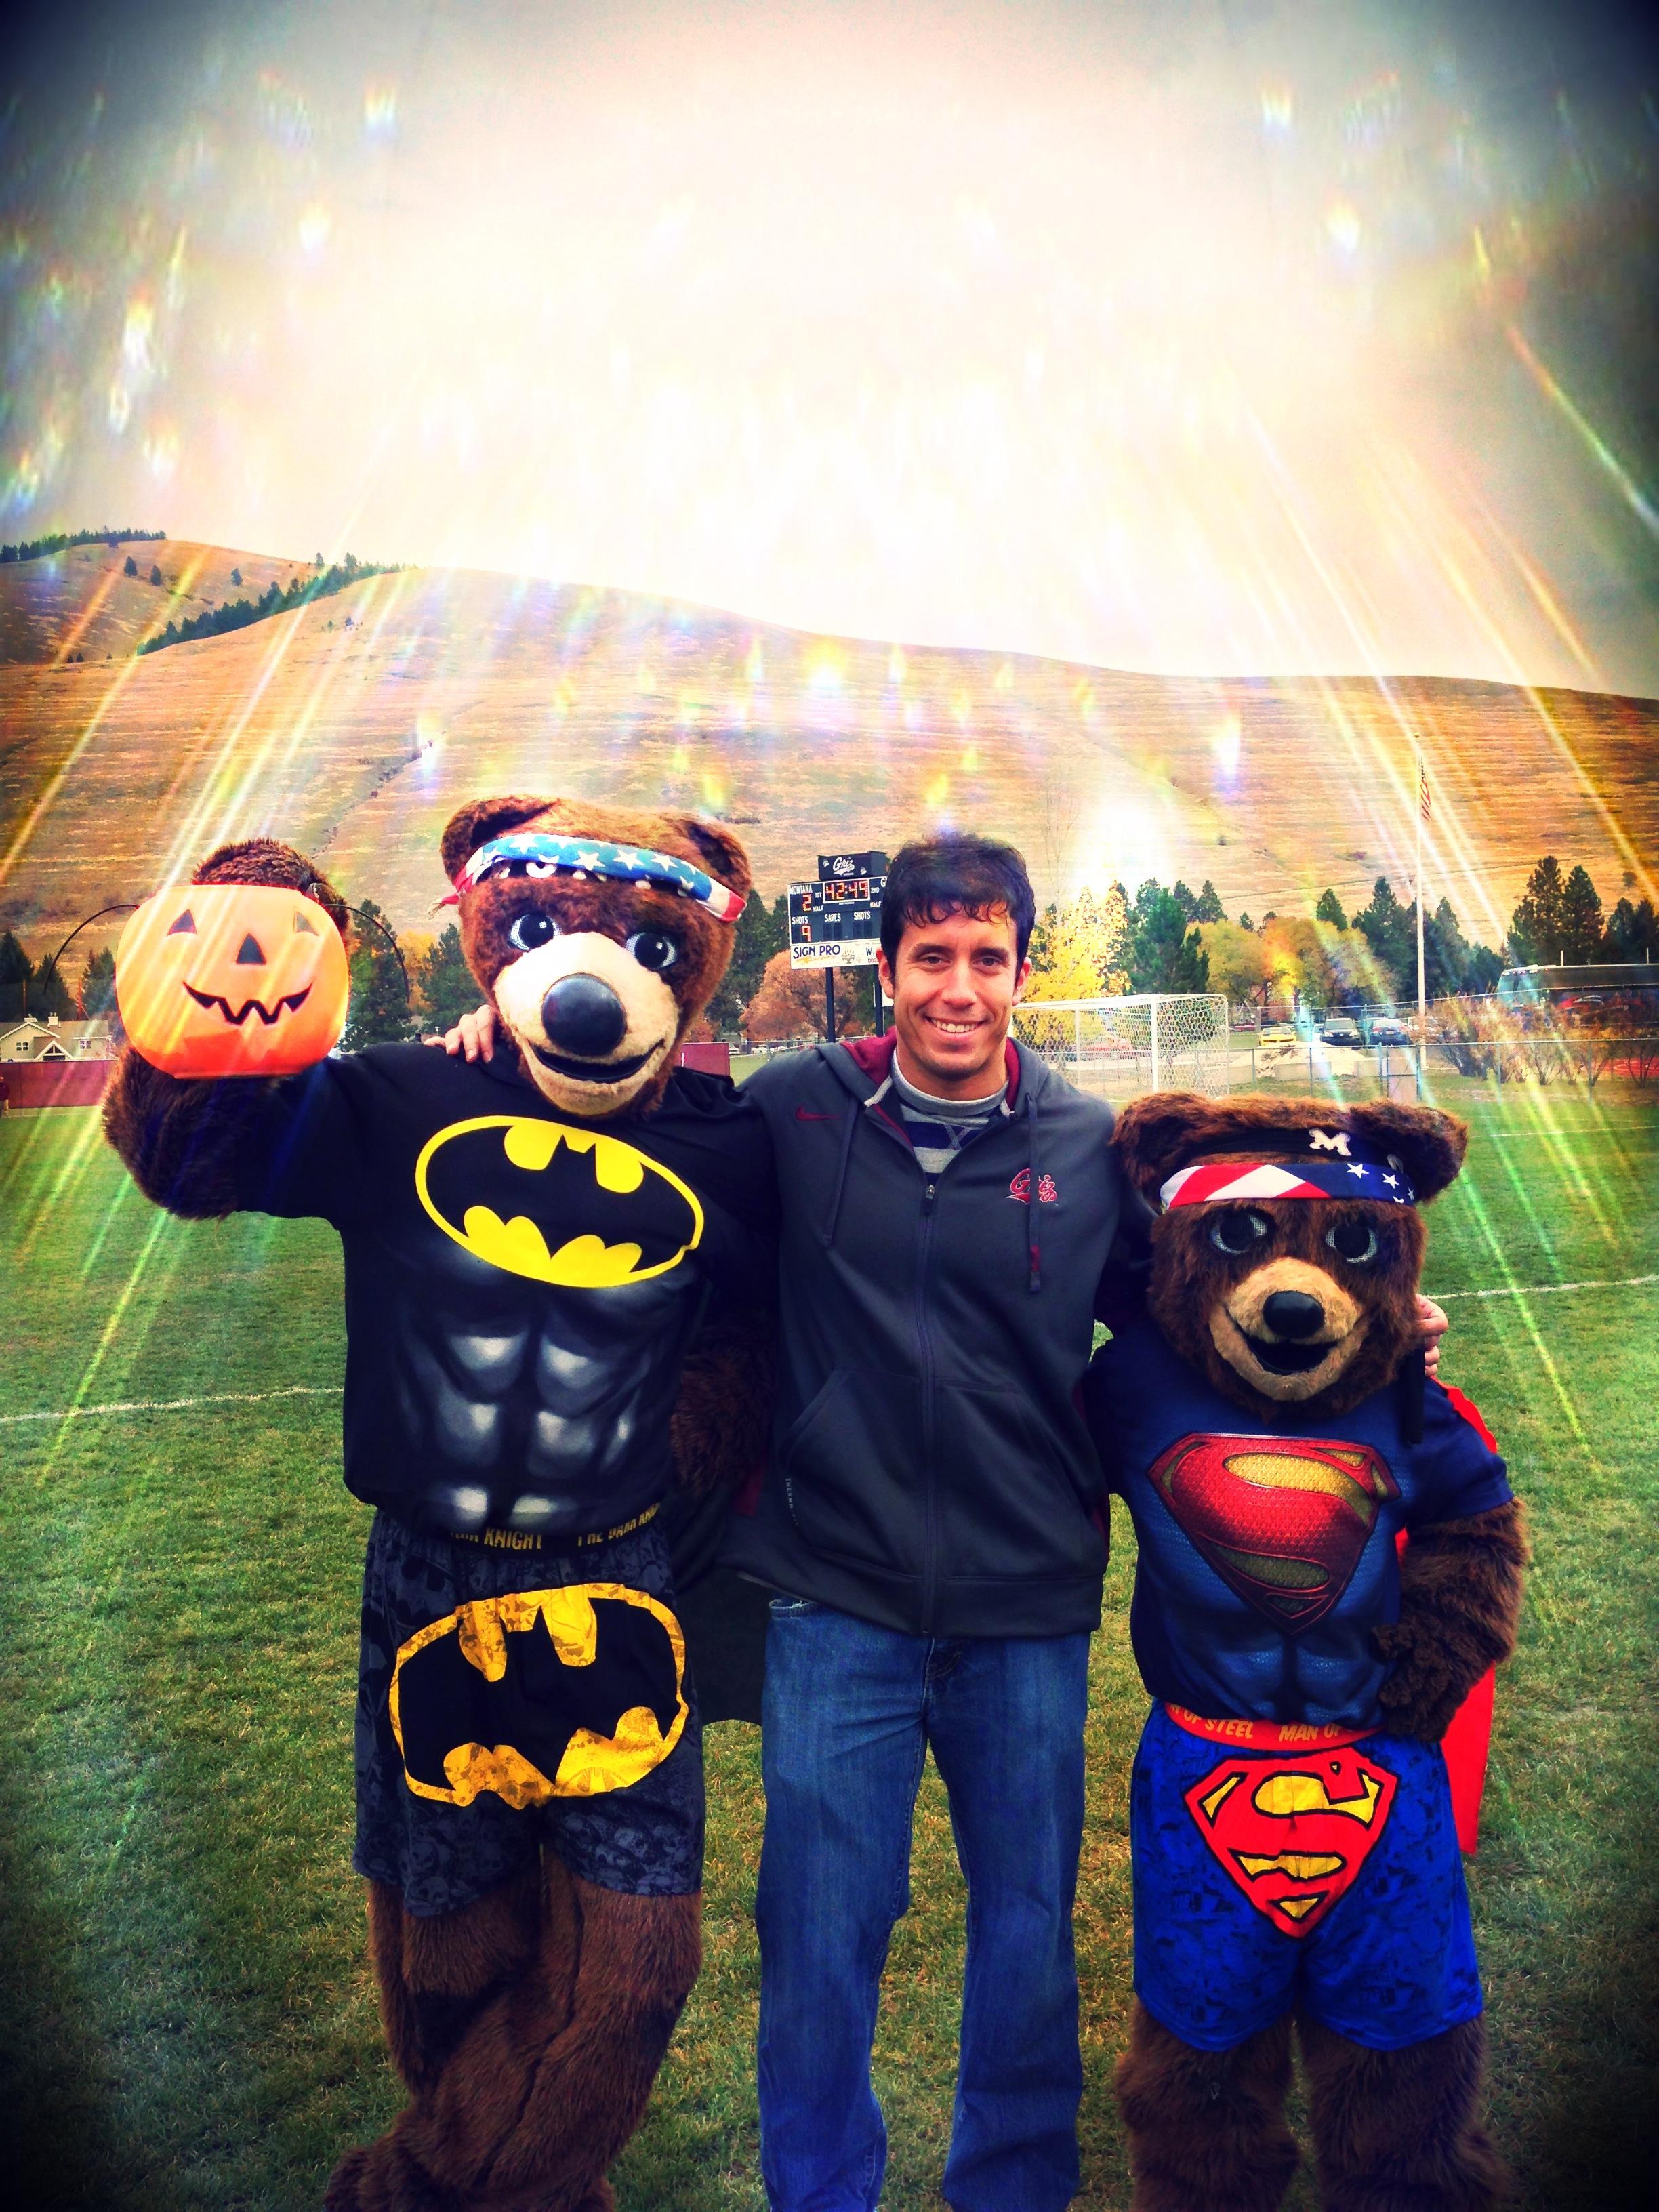 I get the opportunity to work with our mascots, Monte and Mo